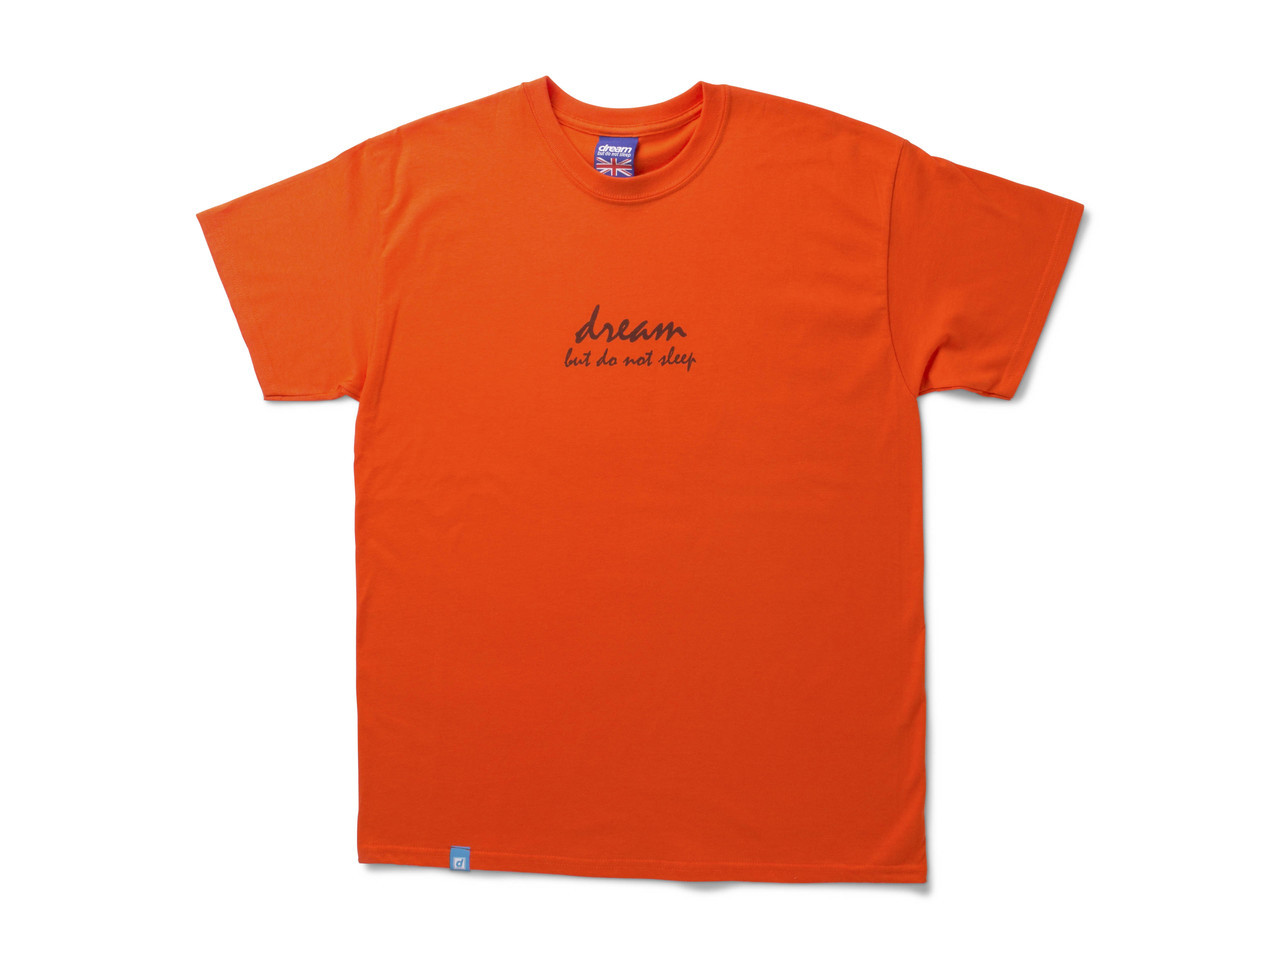 Orange Short Sleeved T-shirt With 90's Logo Design